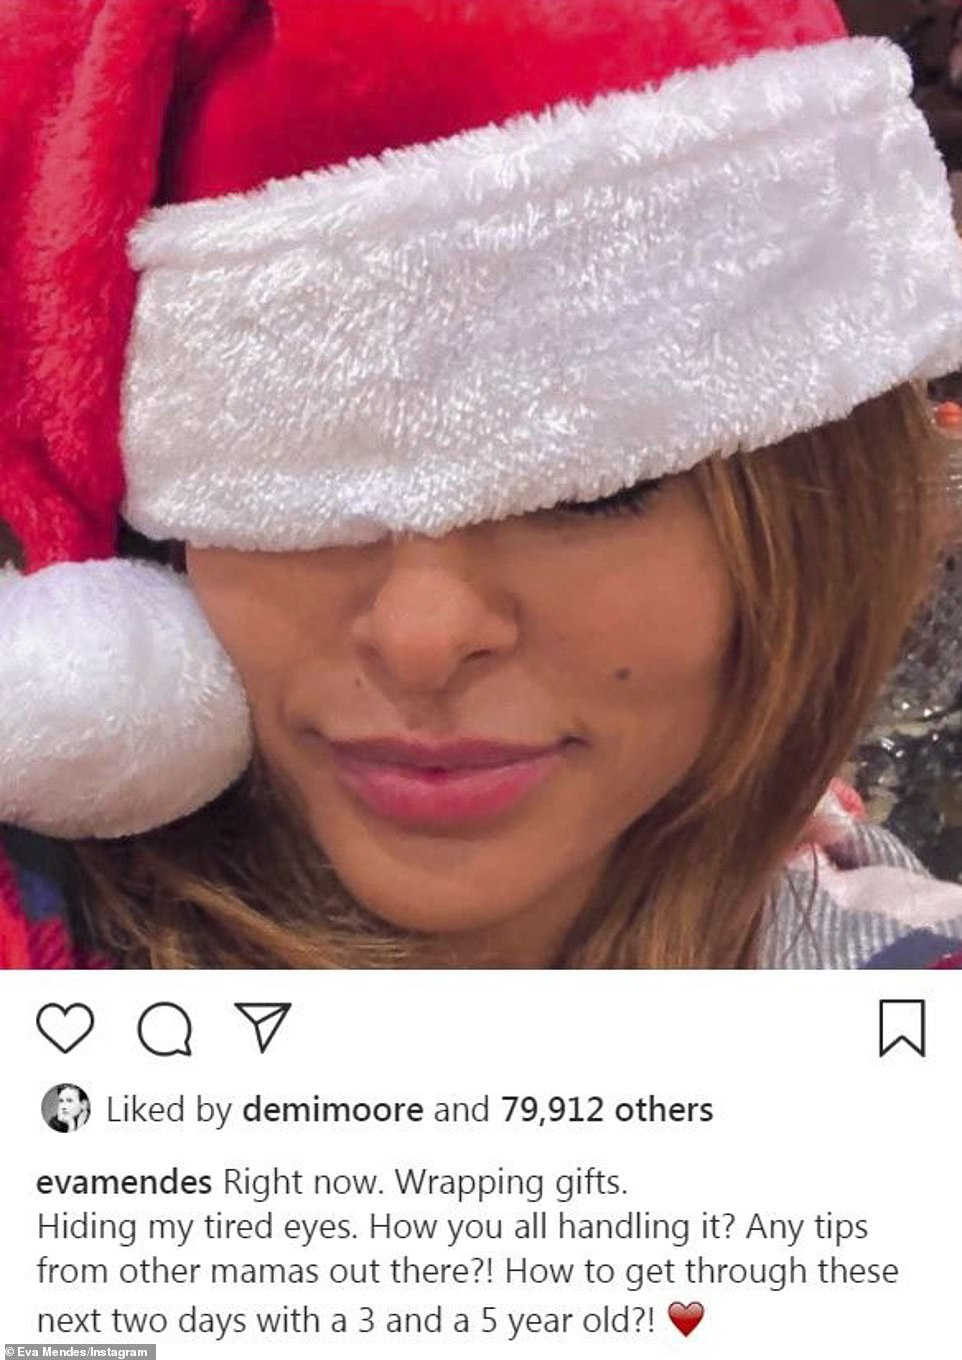 Adoring man: Lopez's fiance also uploaded a pic of the moment, captioning it cheekily with 'My favorite gift is the one in red'